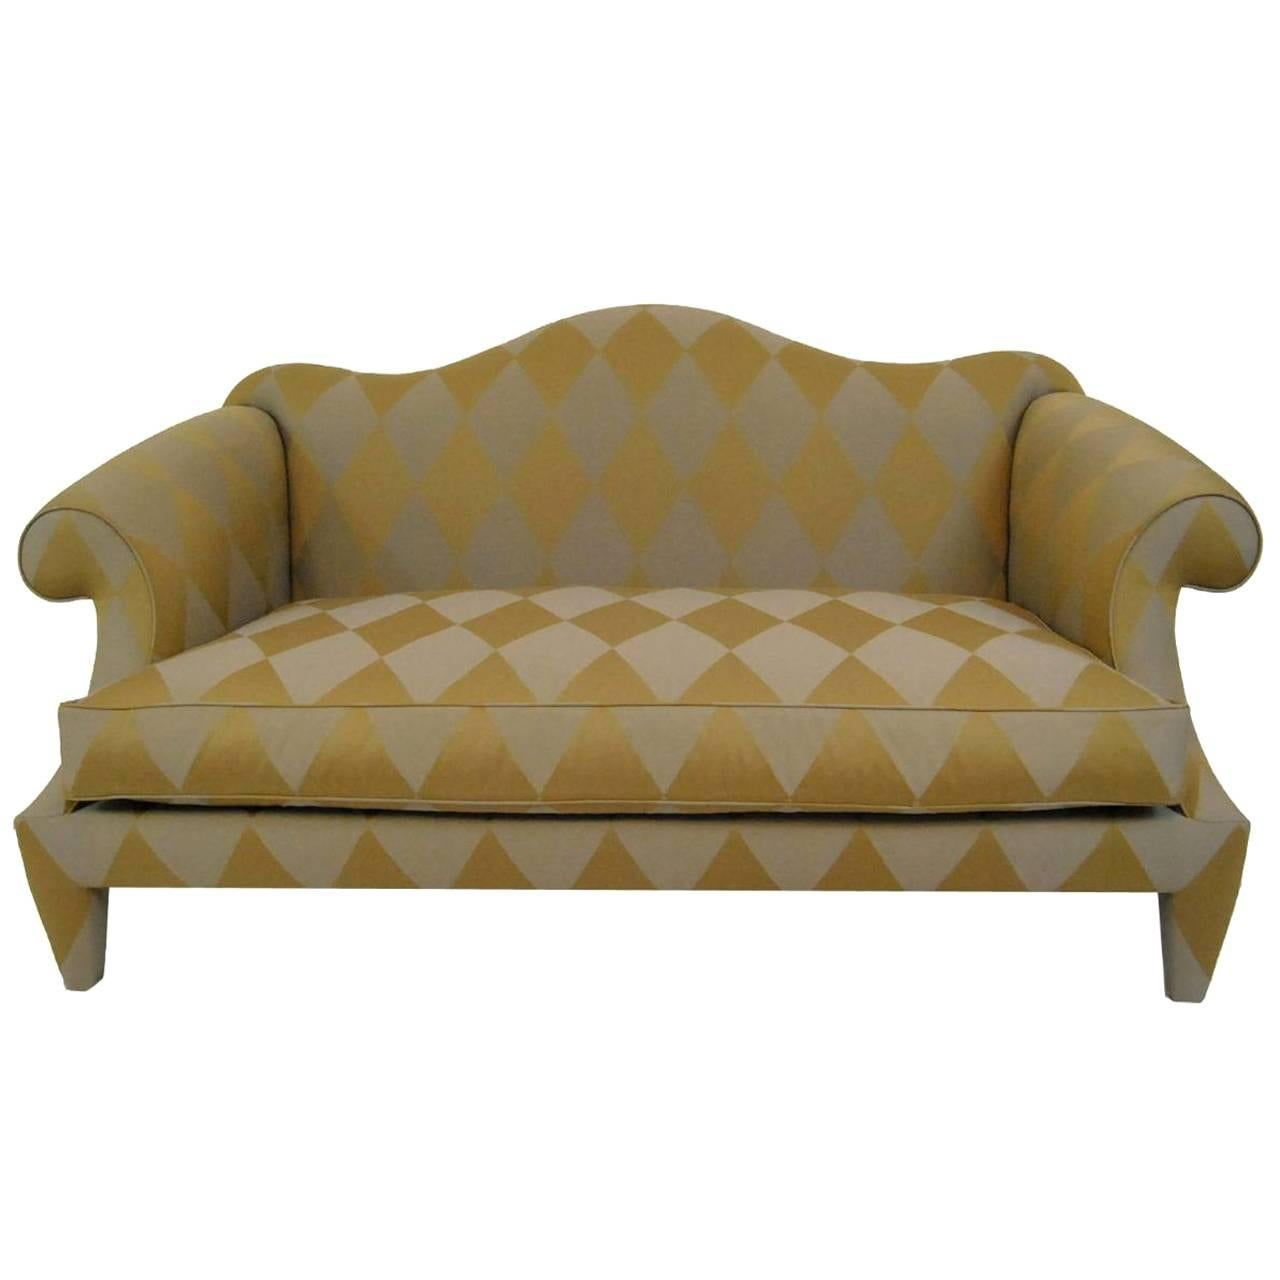 20th Century Camelback Settee Sofa By Donghia